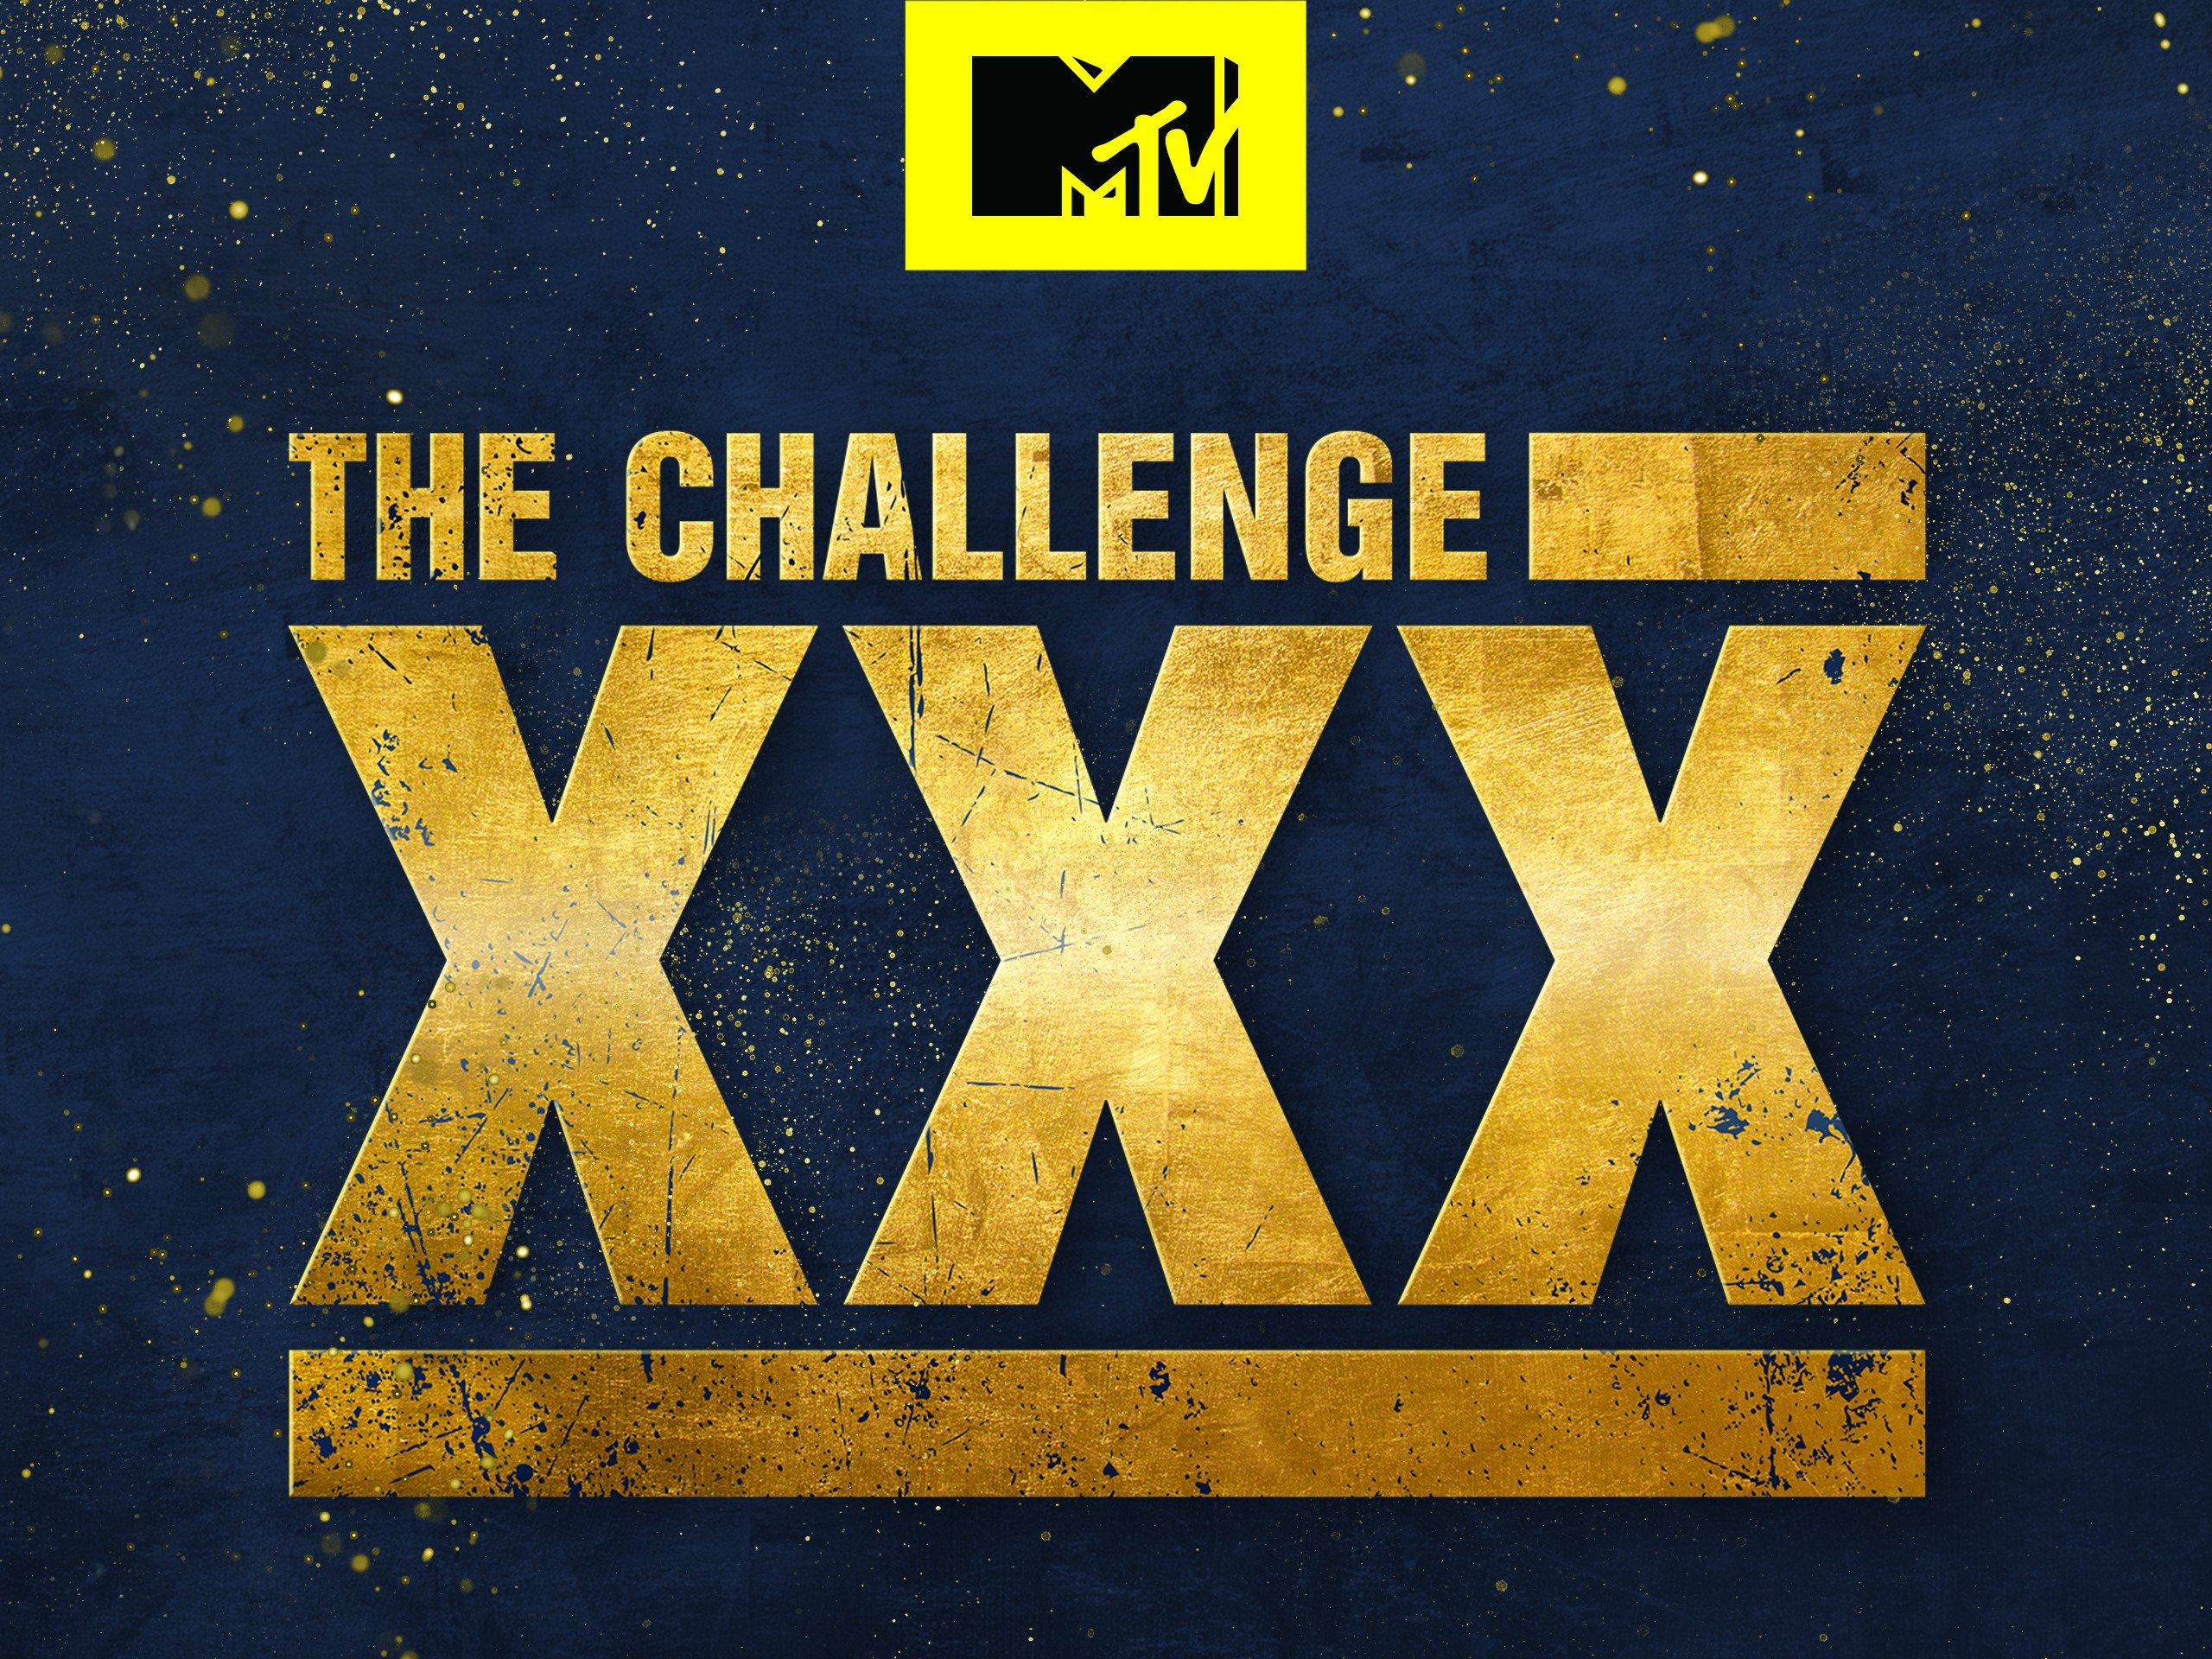 the challenge dirty 30 finale part 2 online